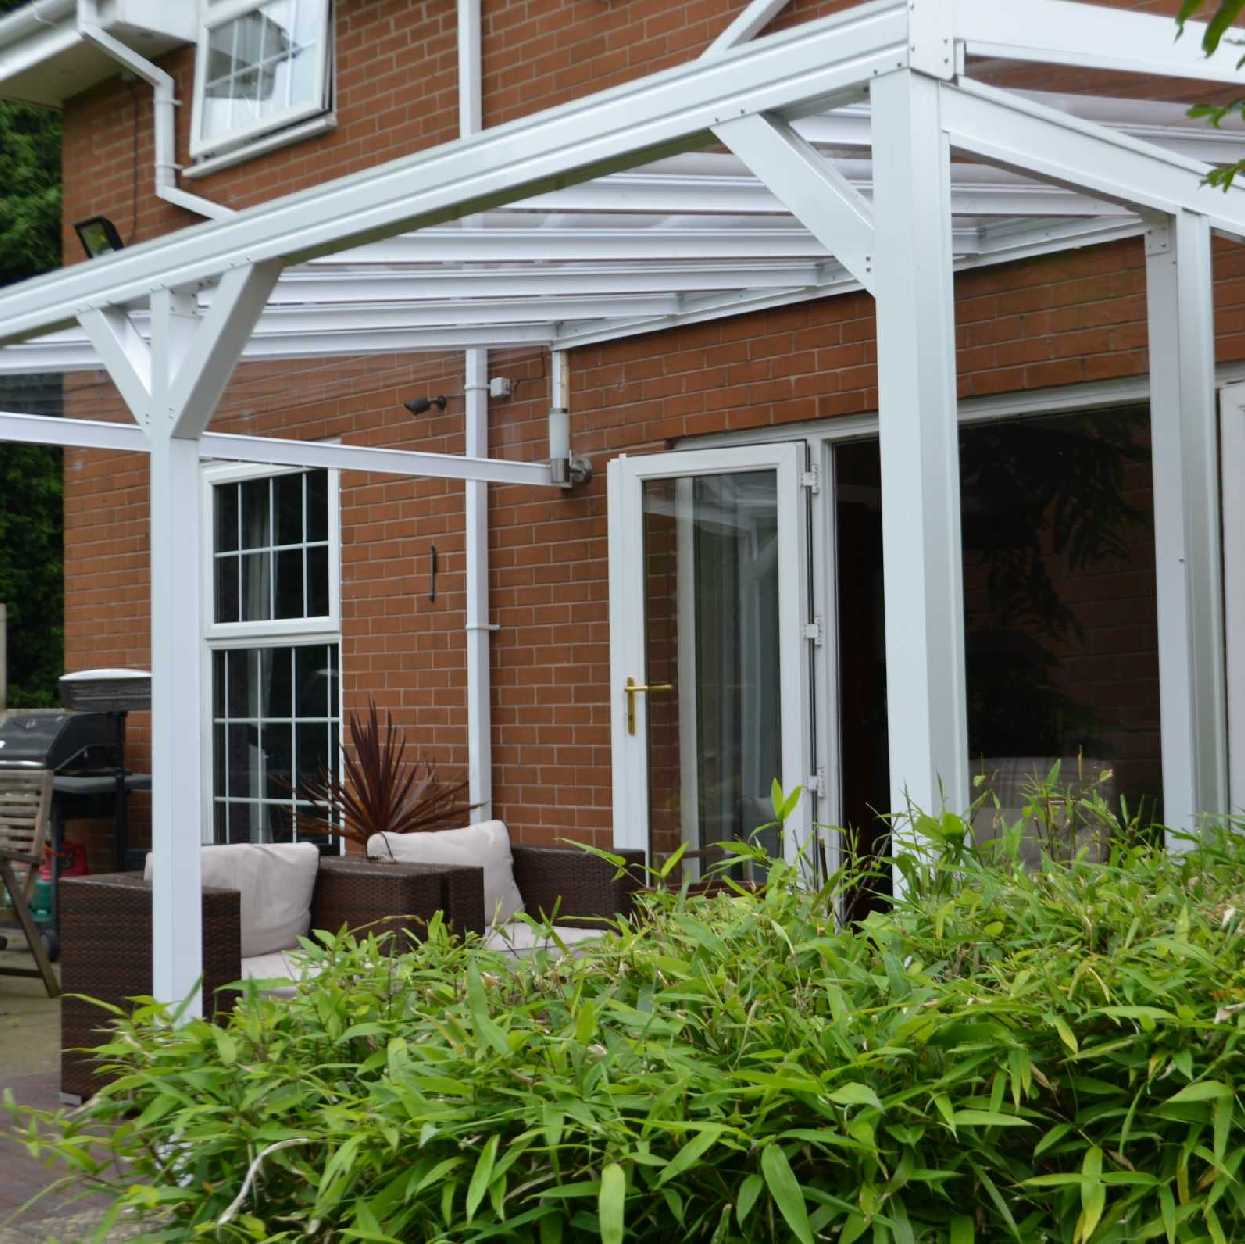 Omega Smart White Lean-To Canopy UNGLAZED for 6mm Glazing - 3.5m (W) x 2.0m (P), (3) Supporting Posts from Omega Build